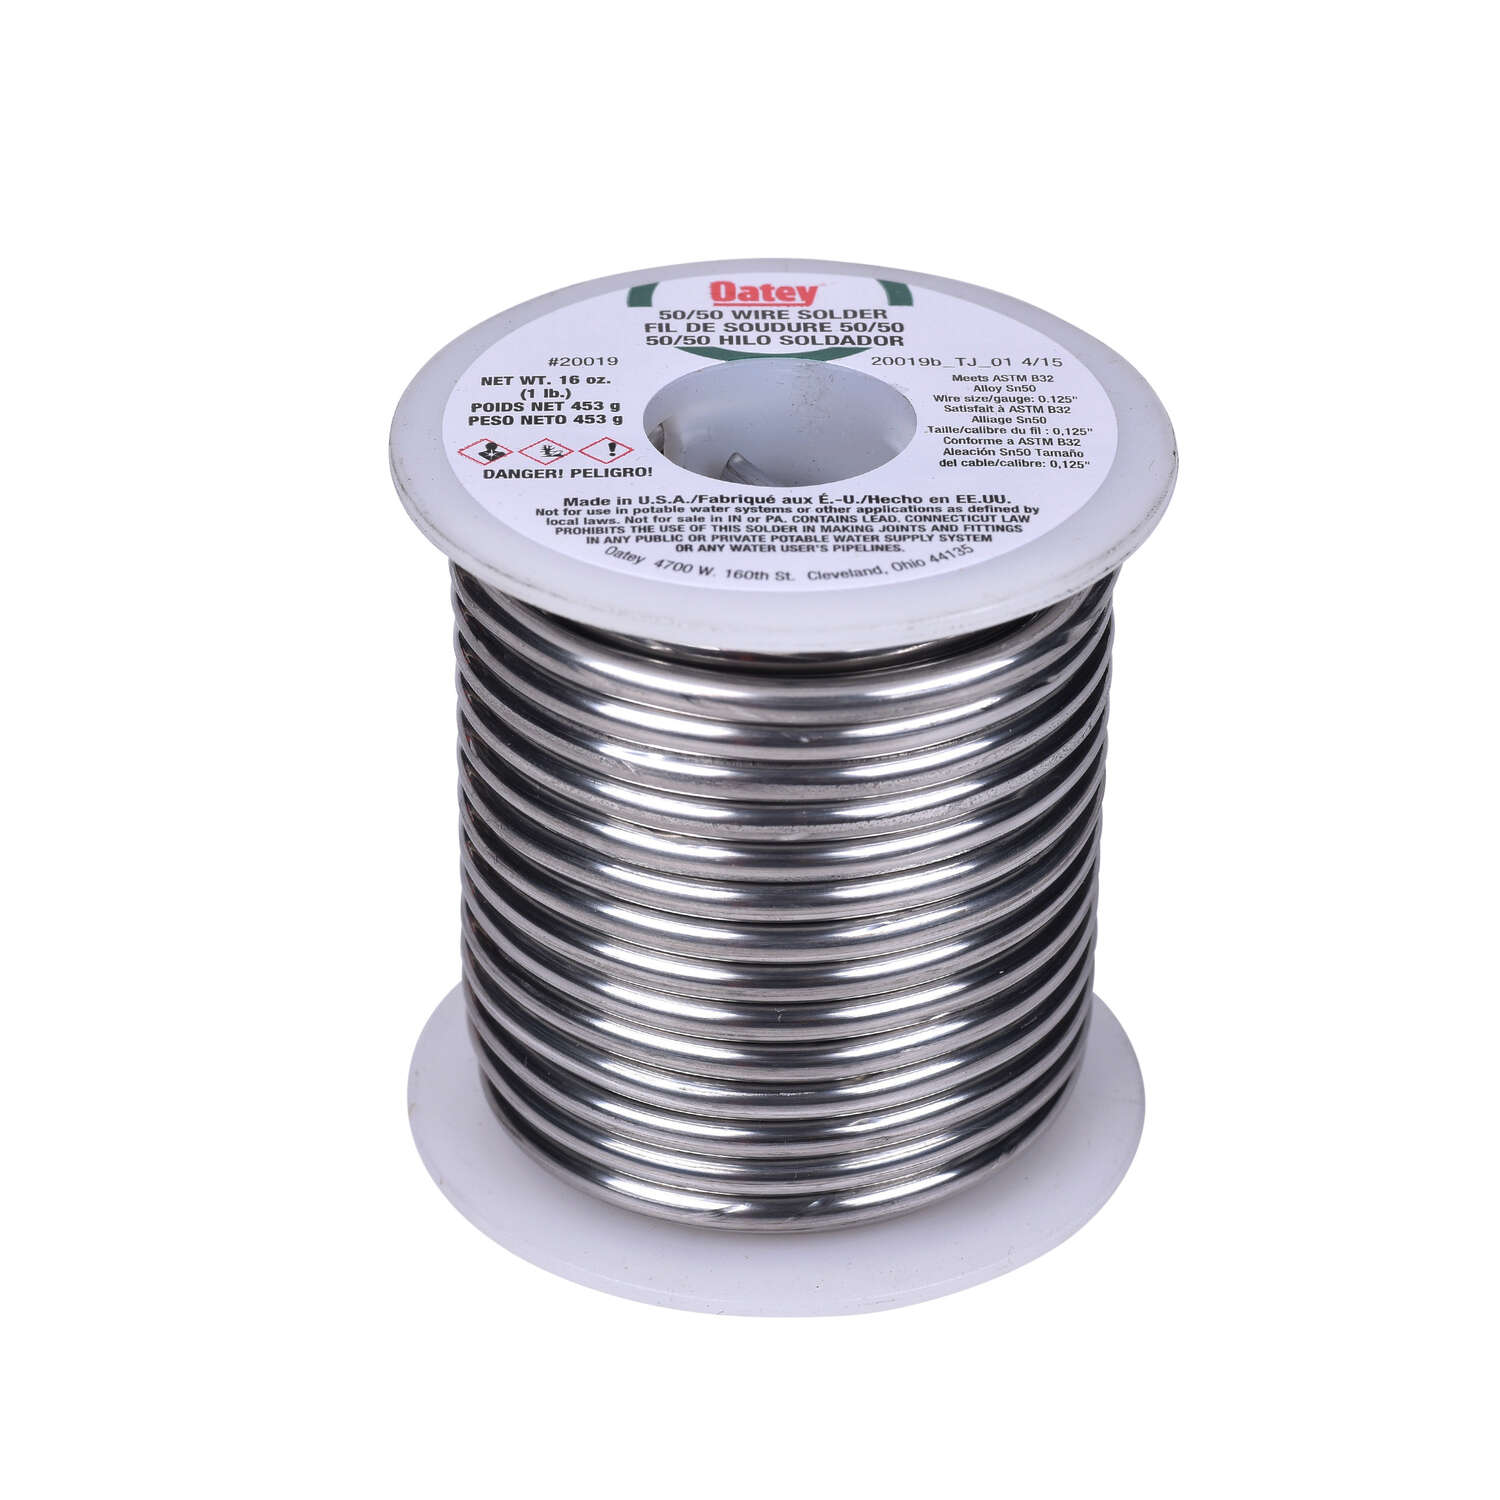 Oatey  1 lb.  x 0.125 in. Dia. Solid Wire Solder  50/50  Tin/Lead